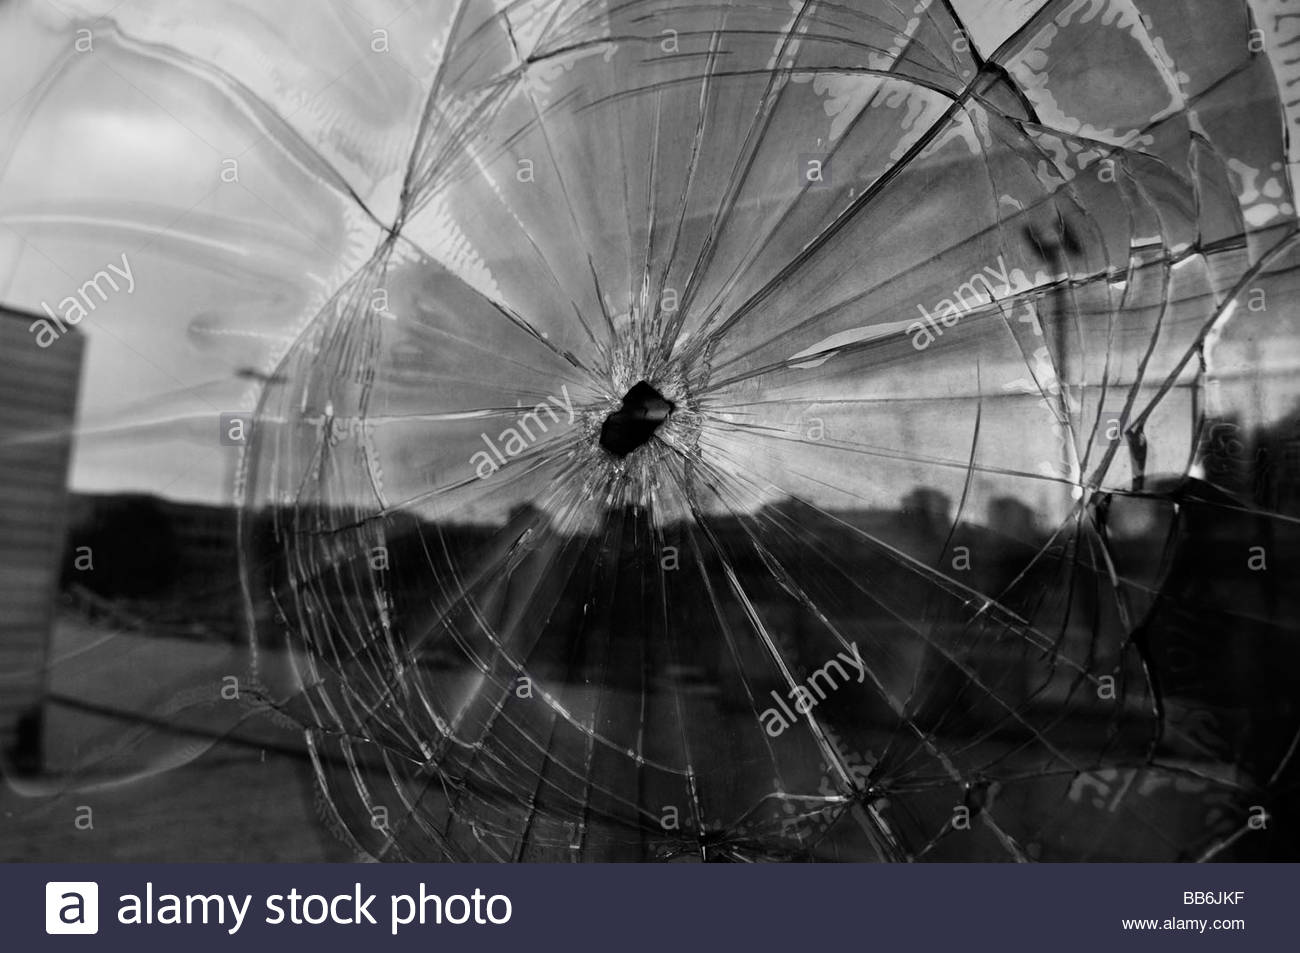 Exterior window  shows shrapnel damage from the 1992-95 war in town of Tuzla.  Bosnia Herzegovina - Stock Image